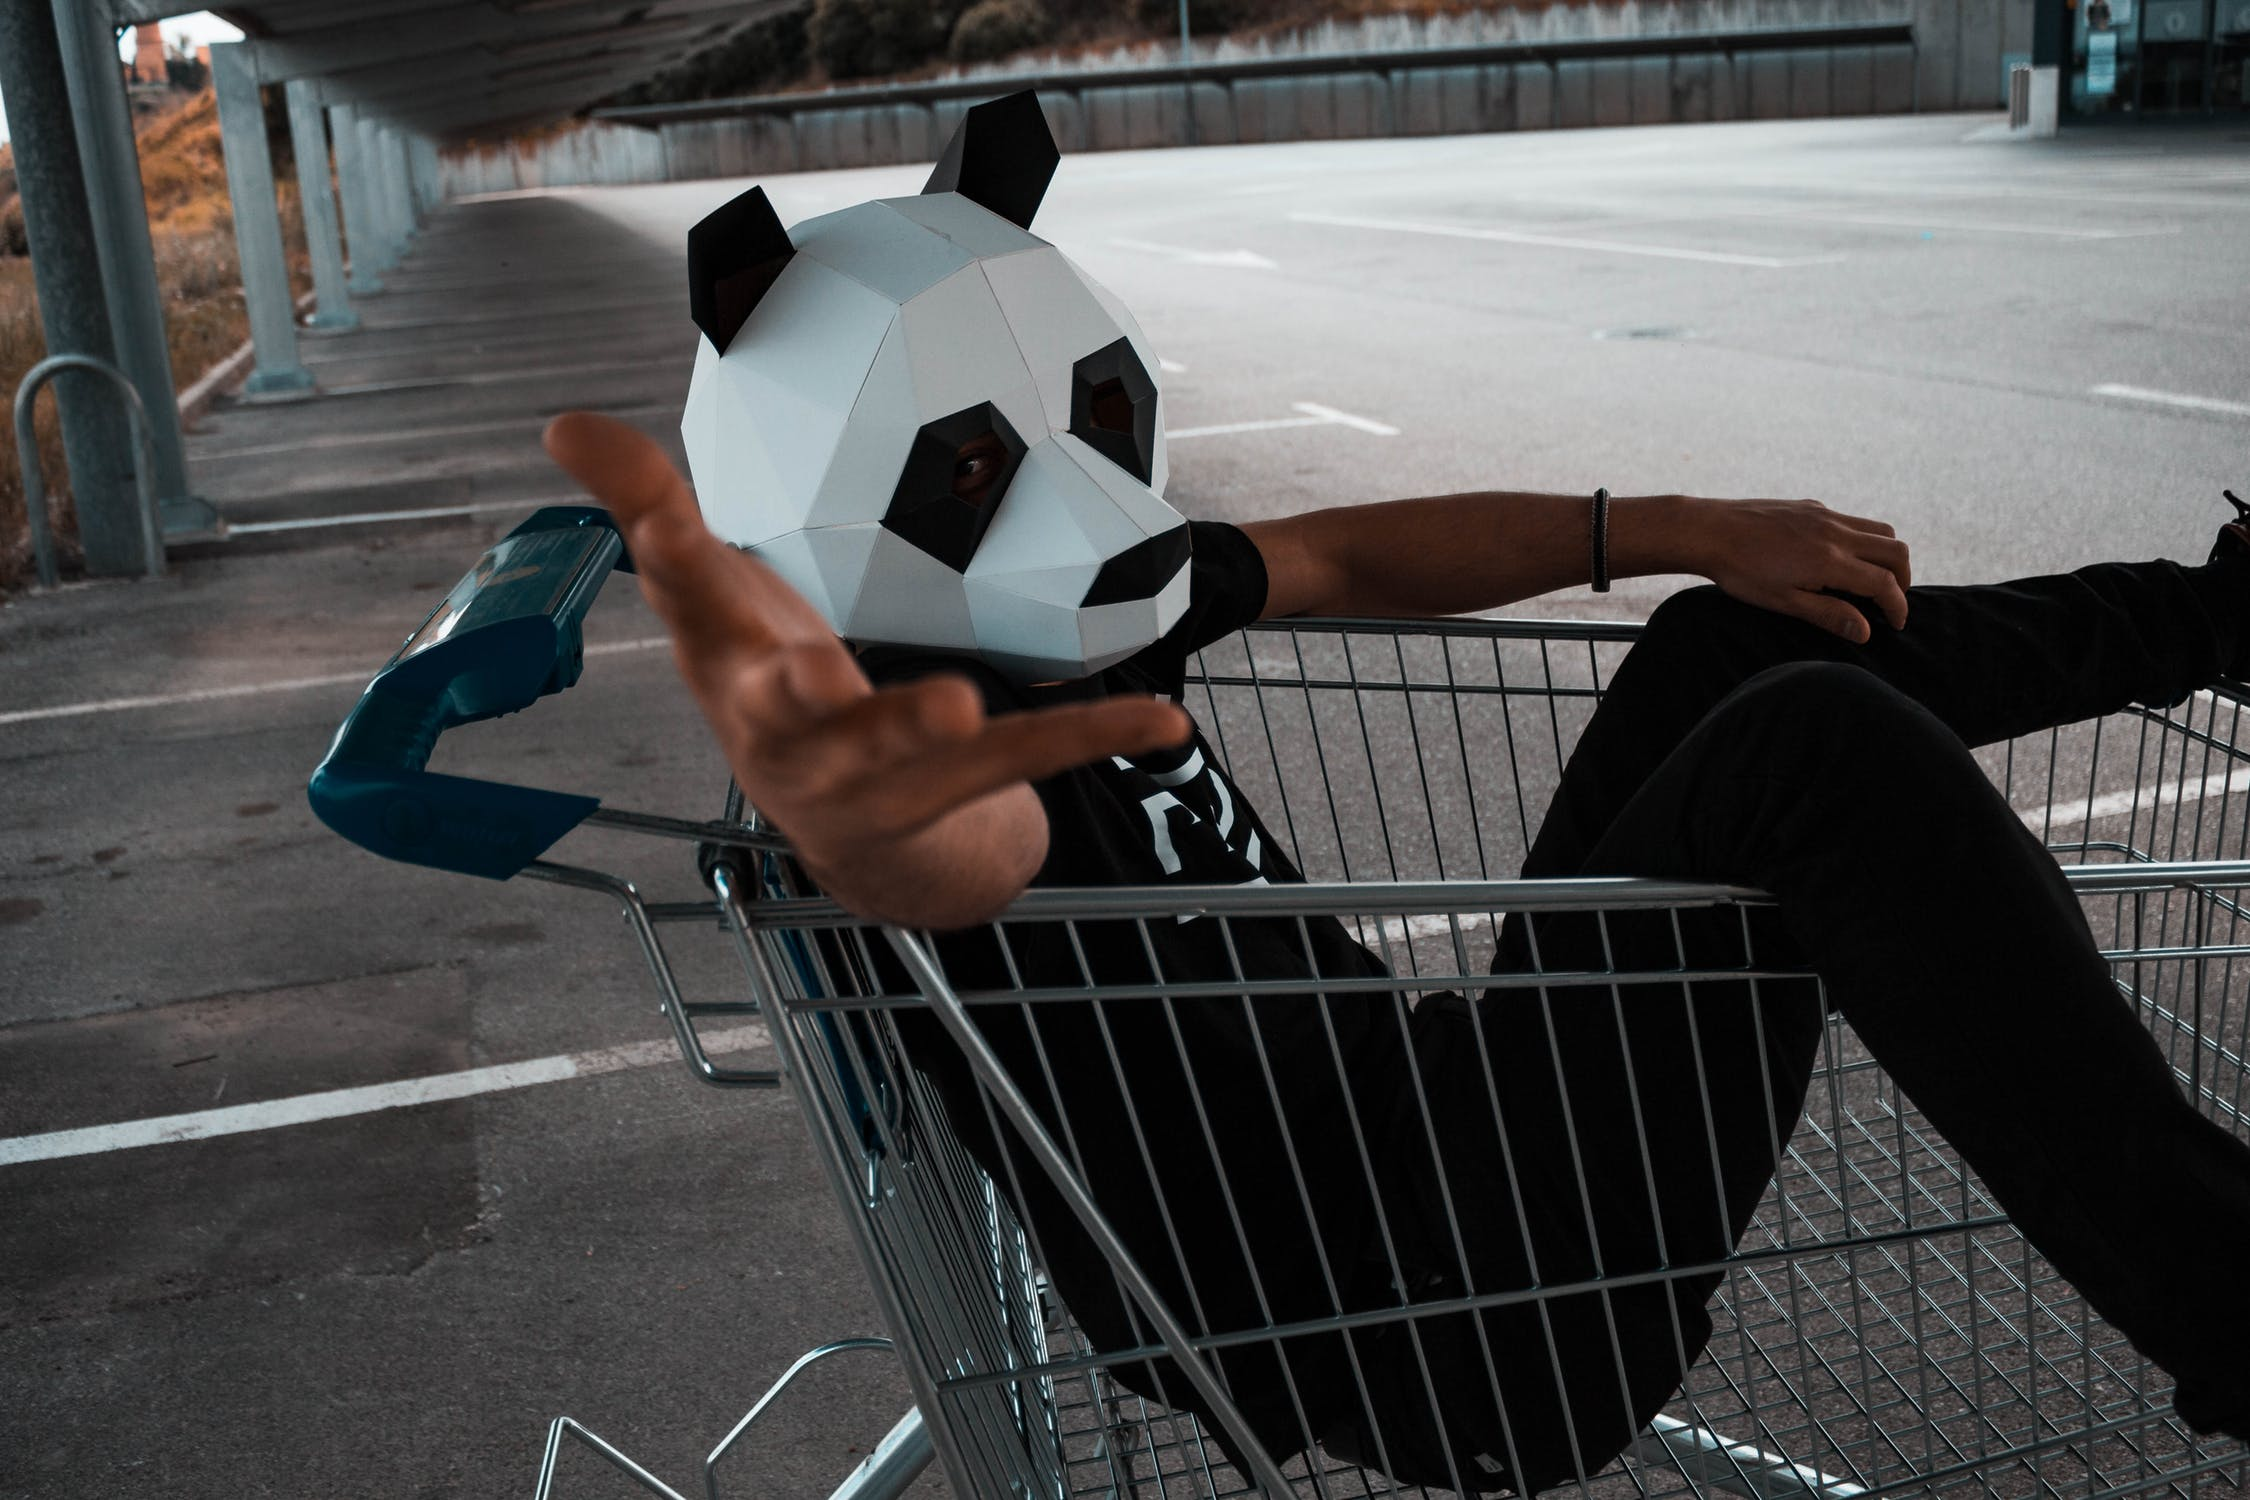 Panda in a shopping cart